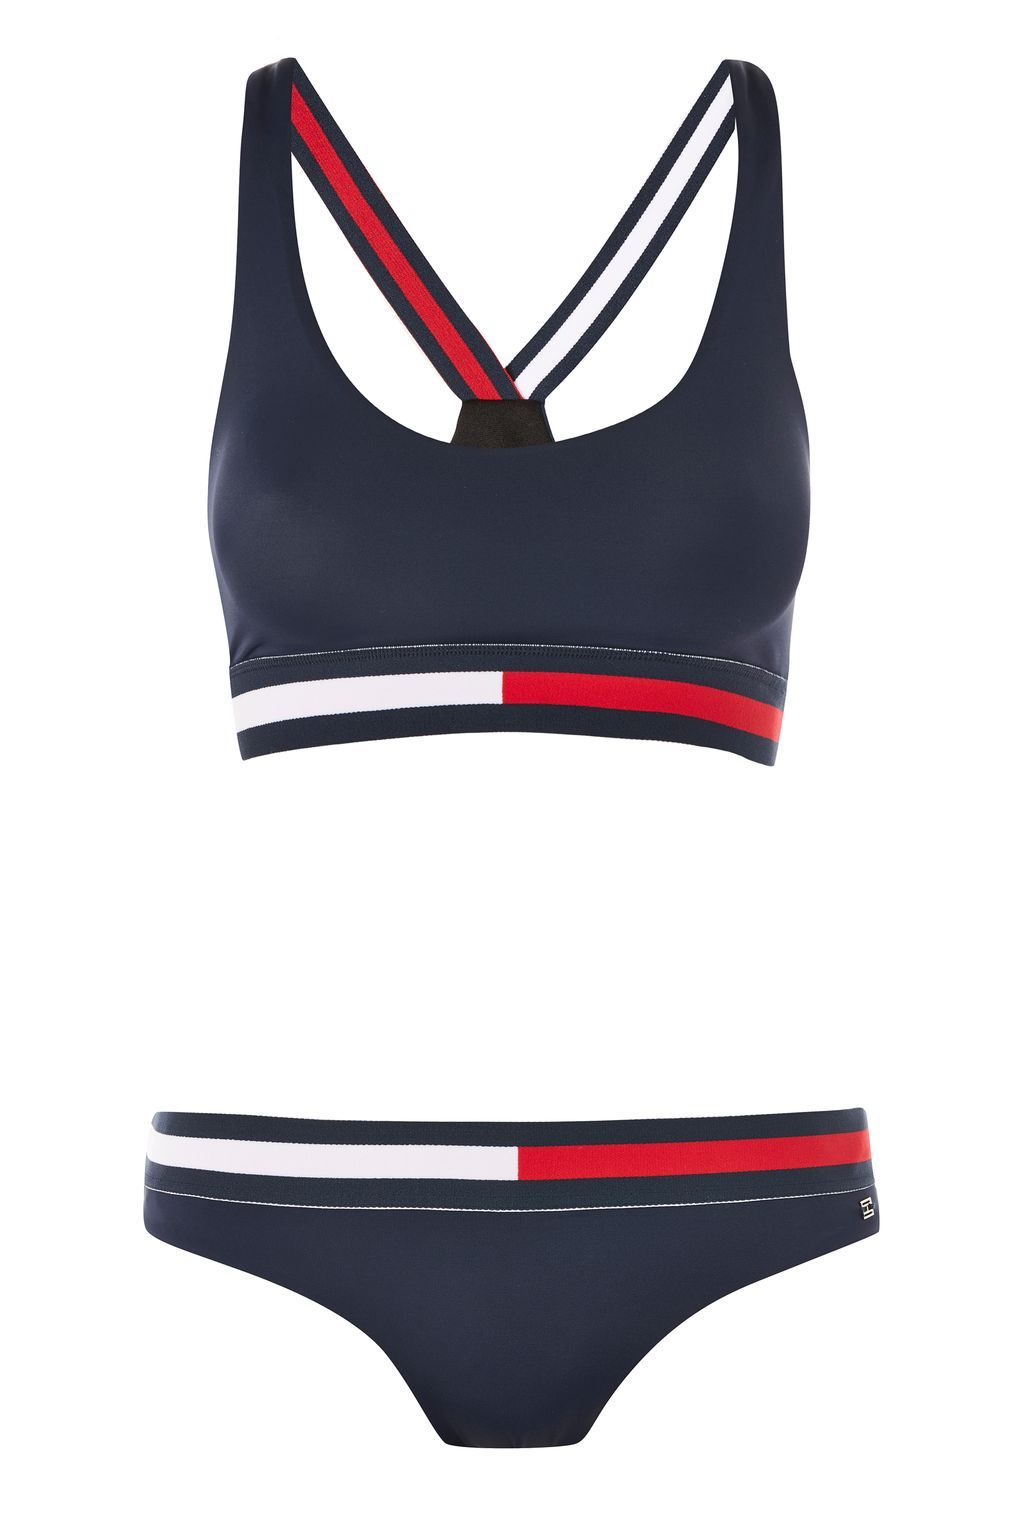 8ce93e77f977 Cross Strap Bikini Top and Bottoms Set by Tommy Hilfiger - Clothing ...